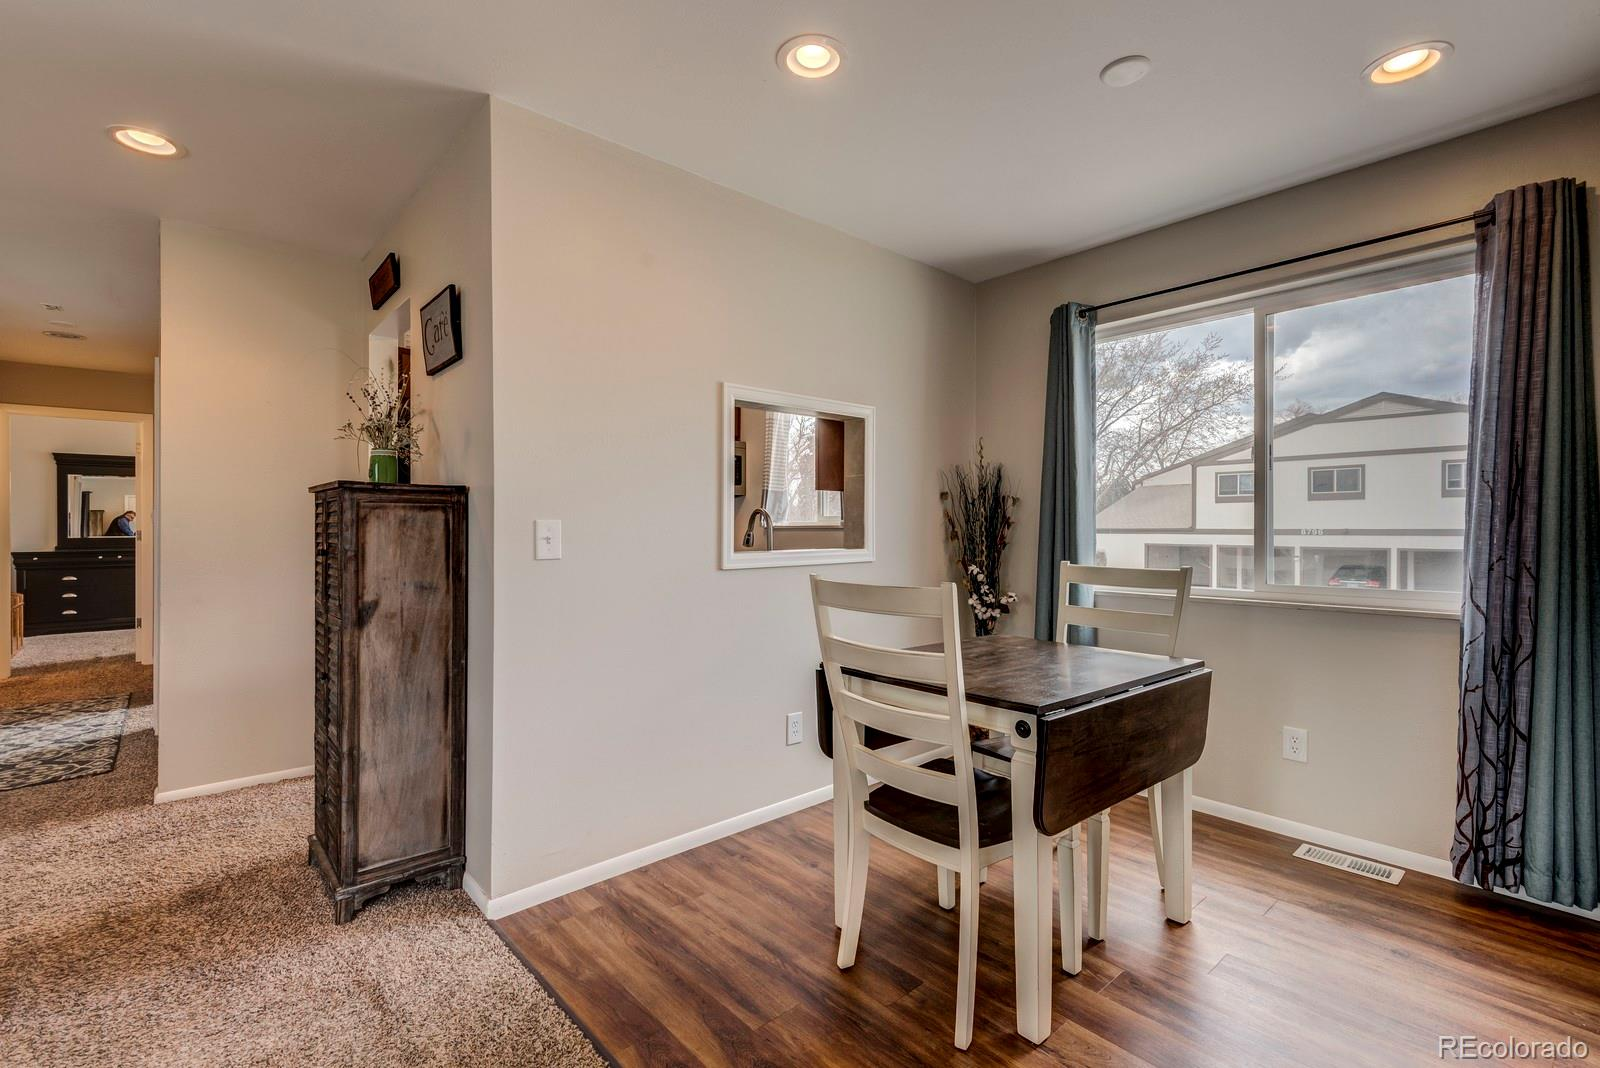 MLS# 2804784 - 7 - 8792 Chase Drive #16, Arvada, CO 80003